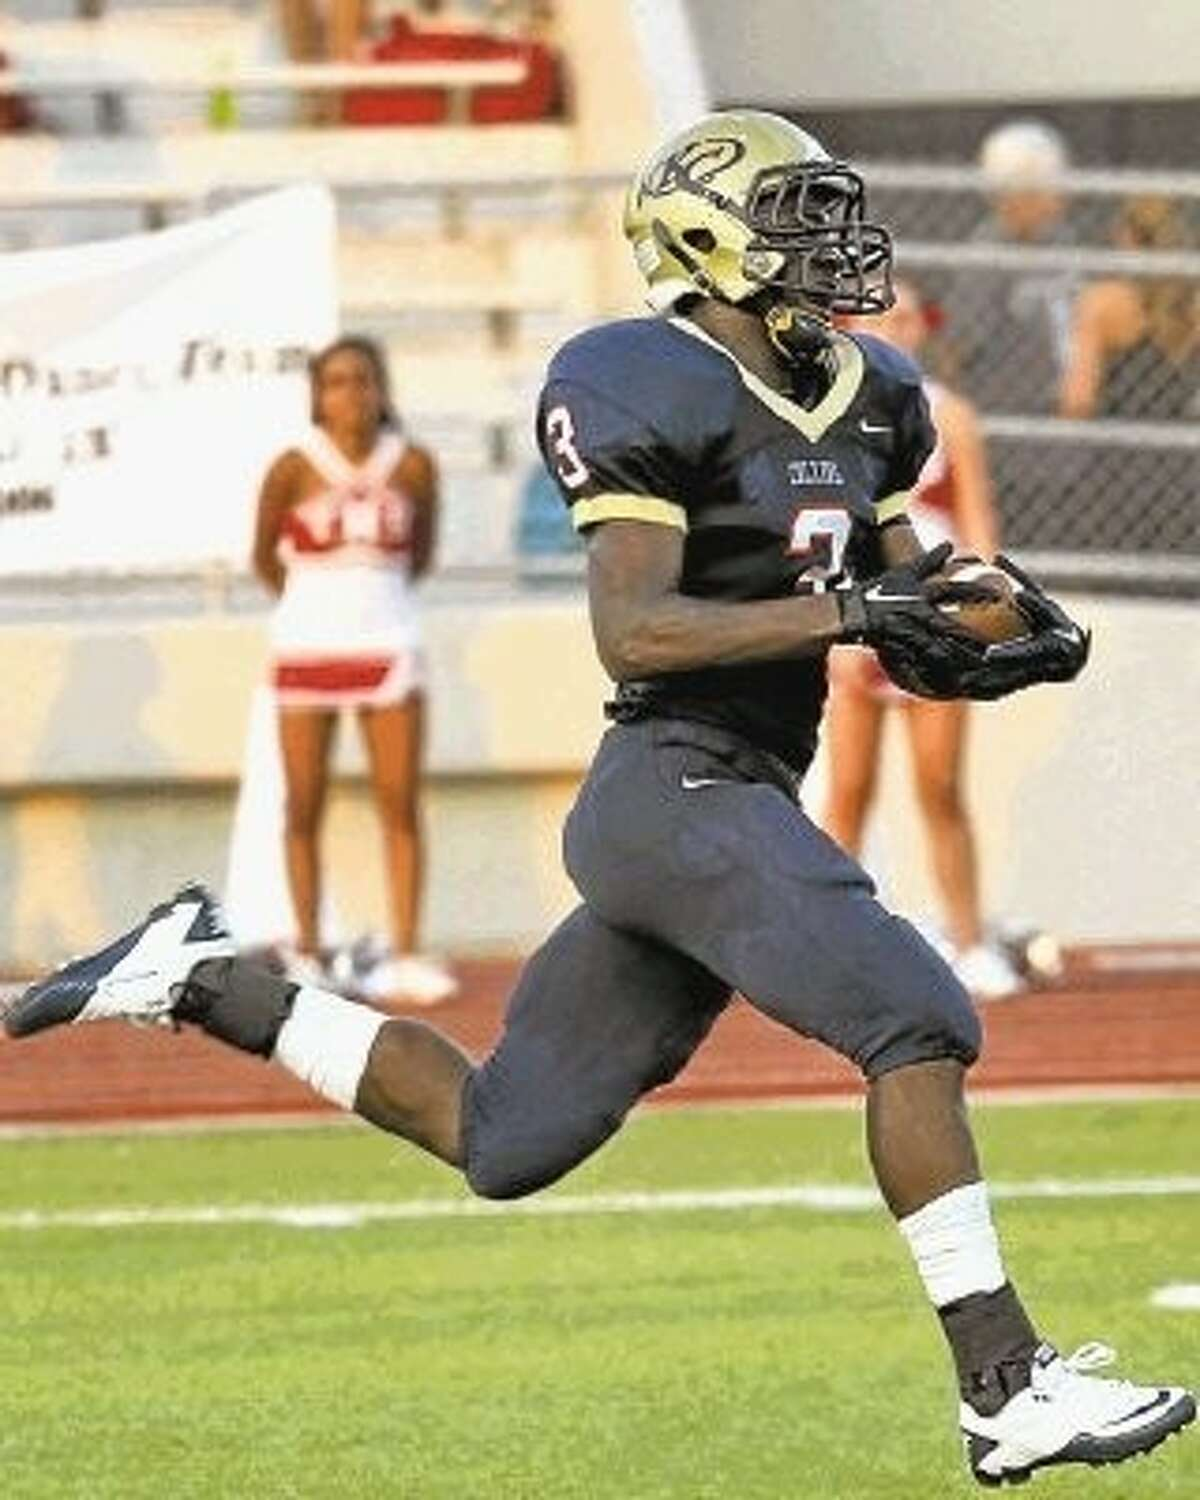 Two-a-days for area football teams are approaching. Klein Collins start Aug. 13, but Klein Forrest, Klein and Klein Oak will hit the field again in a few days as season openers approach.